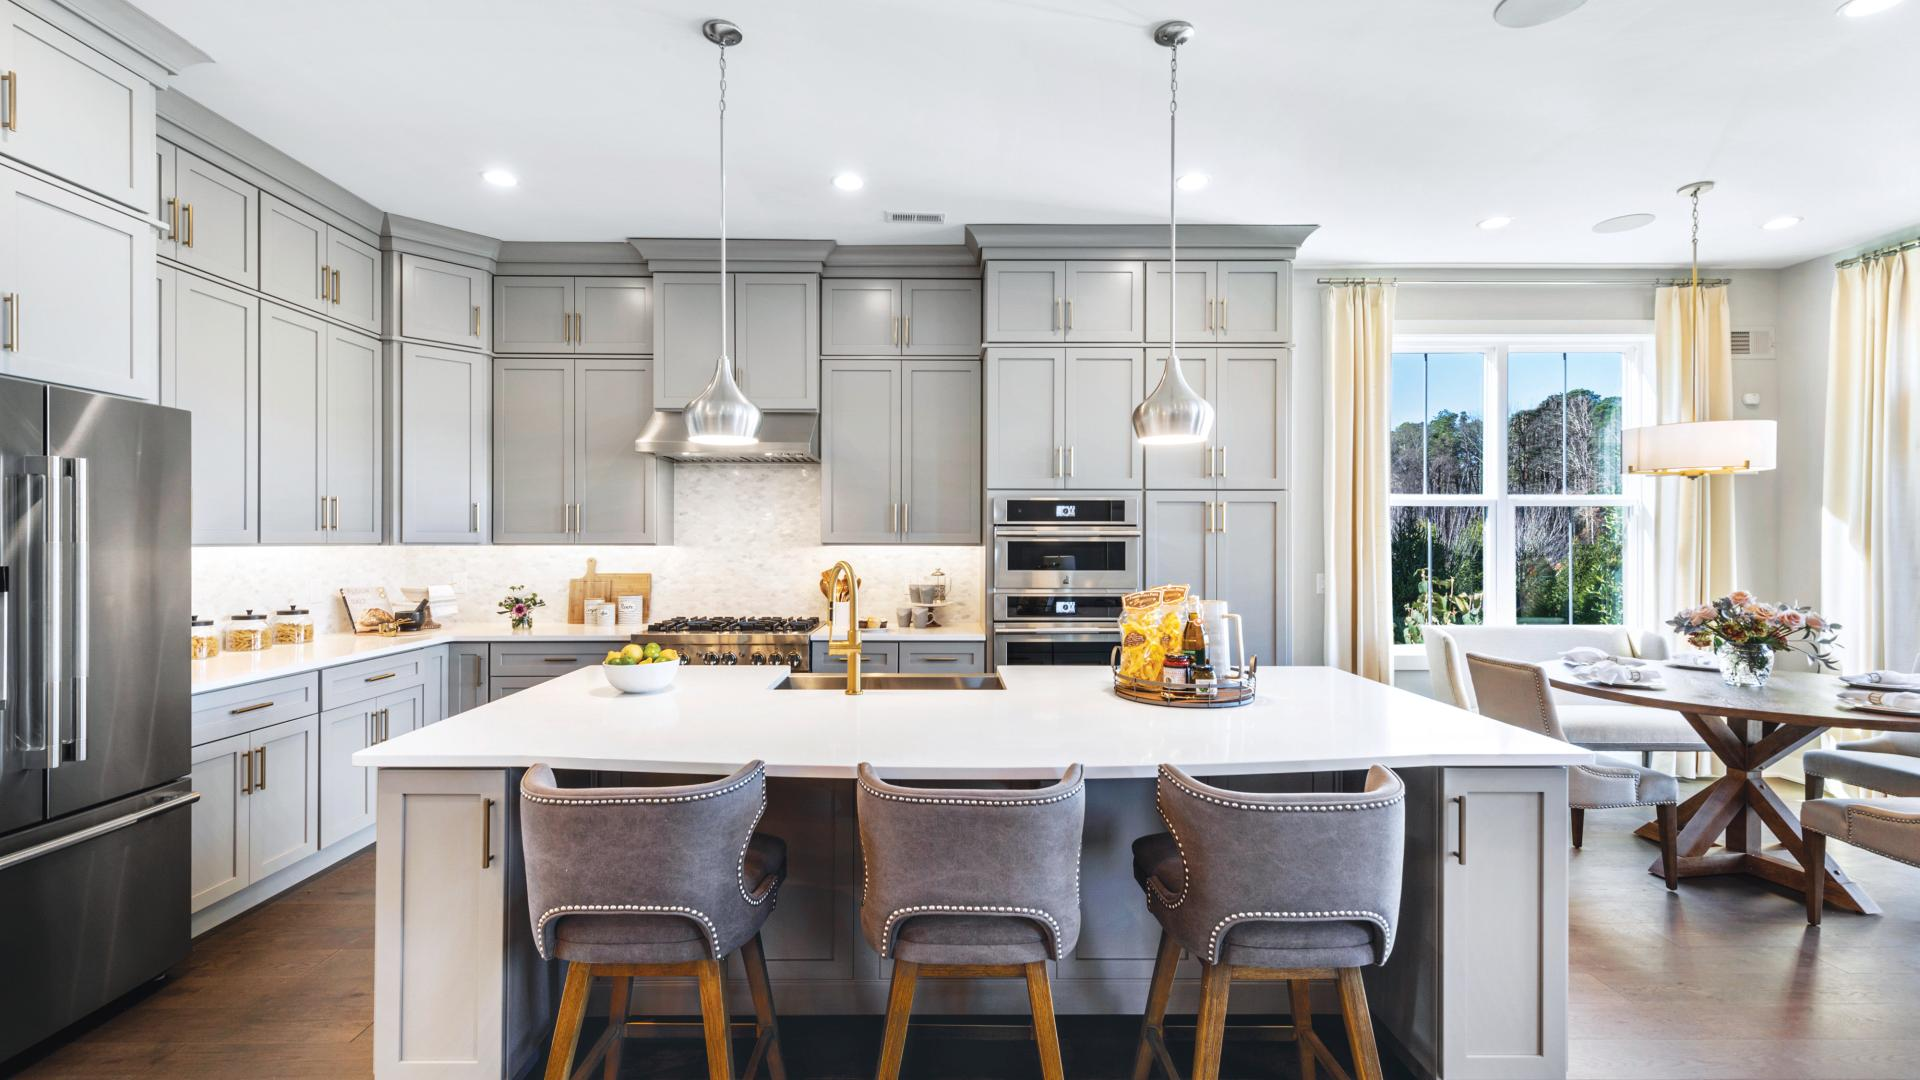 Spacious kitchens with granite countertops and luxury cabinetry